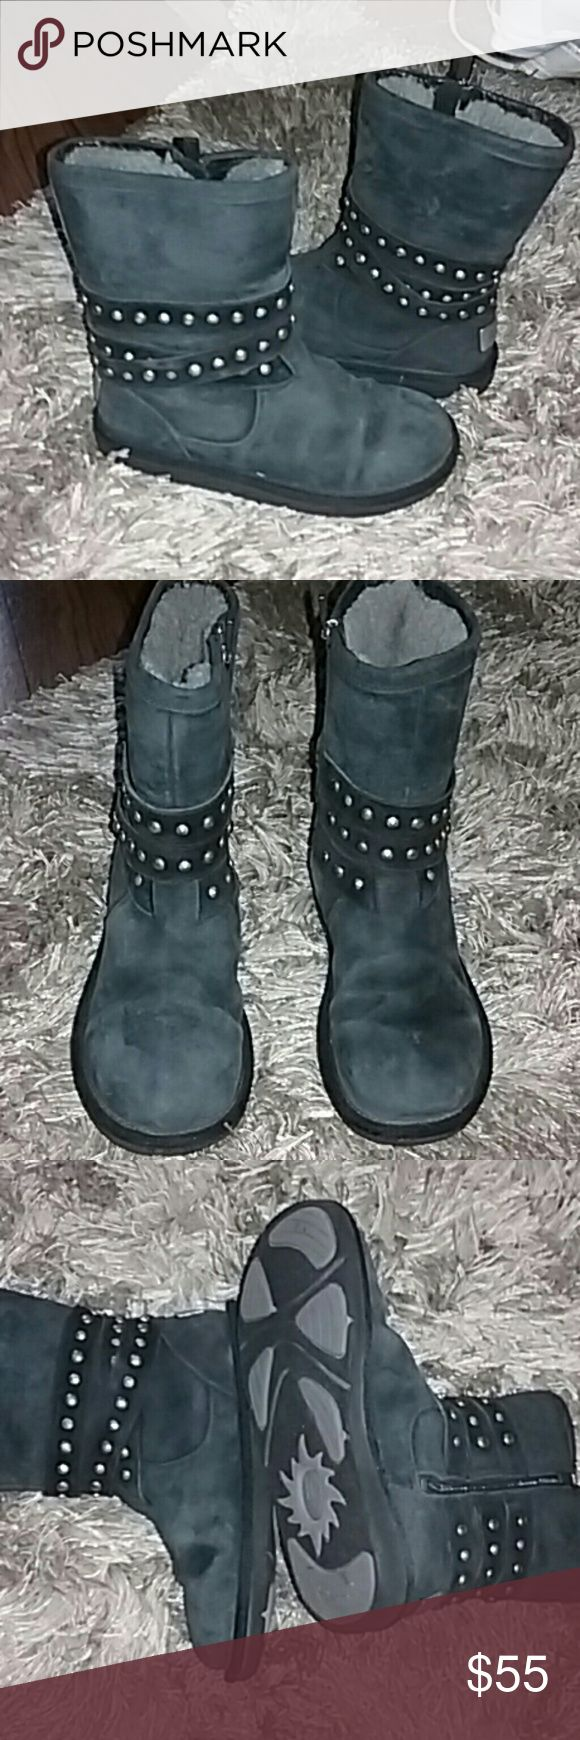 Women's Ugg boots size 6 Women's charcoal black Ugg boots style they are size 6 number 3329 they zip up the side and have a studded wrap around trim with silver metallic plaques in the back the fur inside is still very fluffy and very clean they are in good shape Ugg Shoes Ankle Boots & Booties